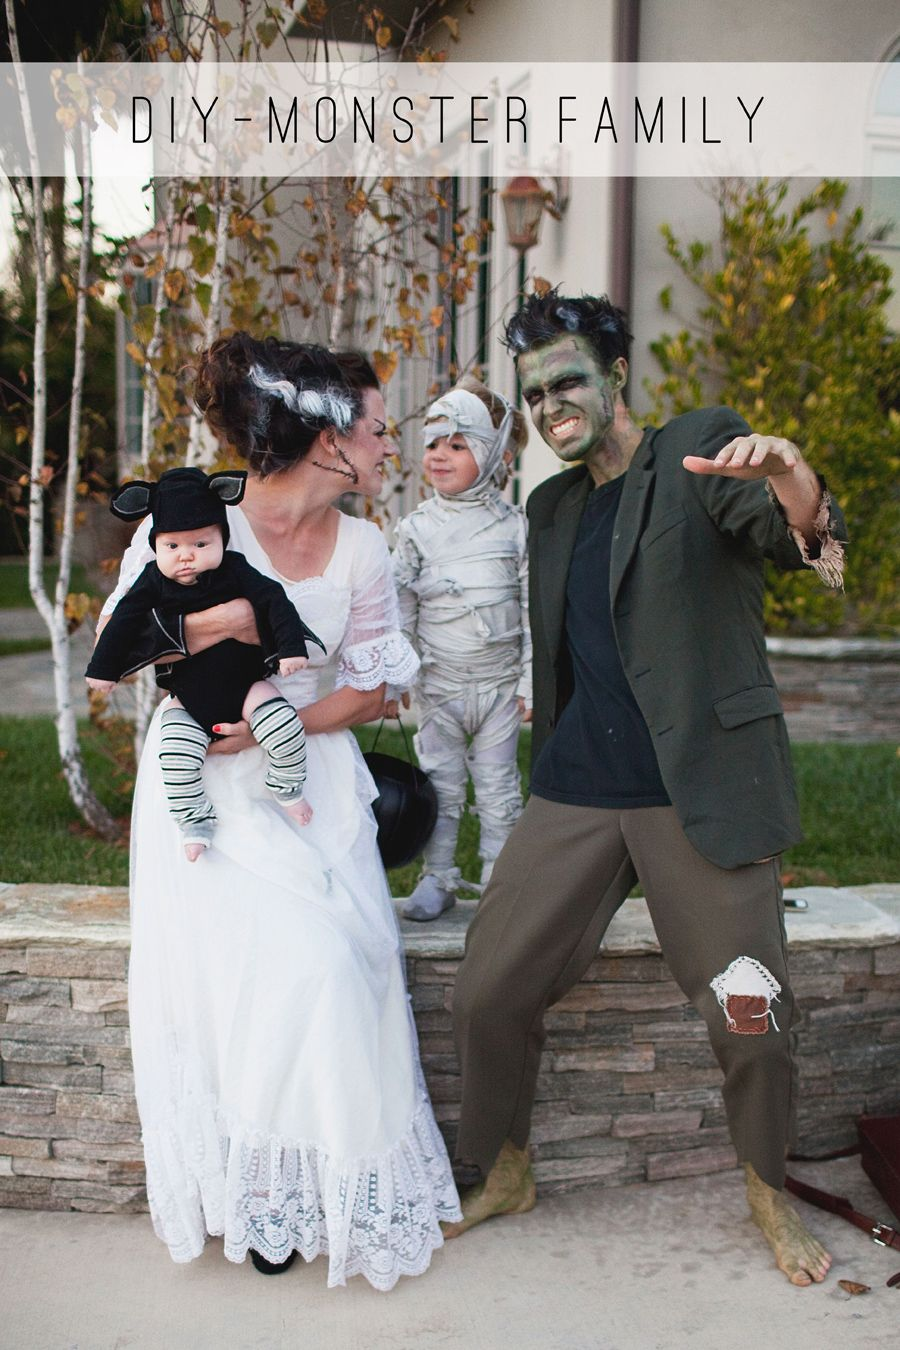 Monster family costume diy monsters costumes and chocolate monster family costume diy solutioingenieria Gallery